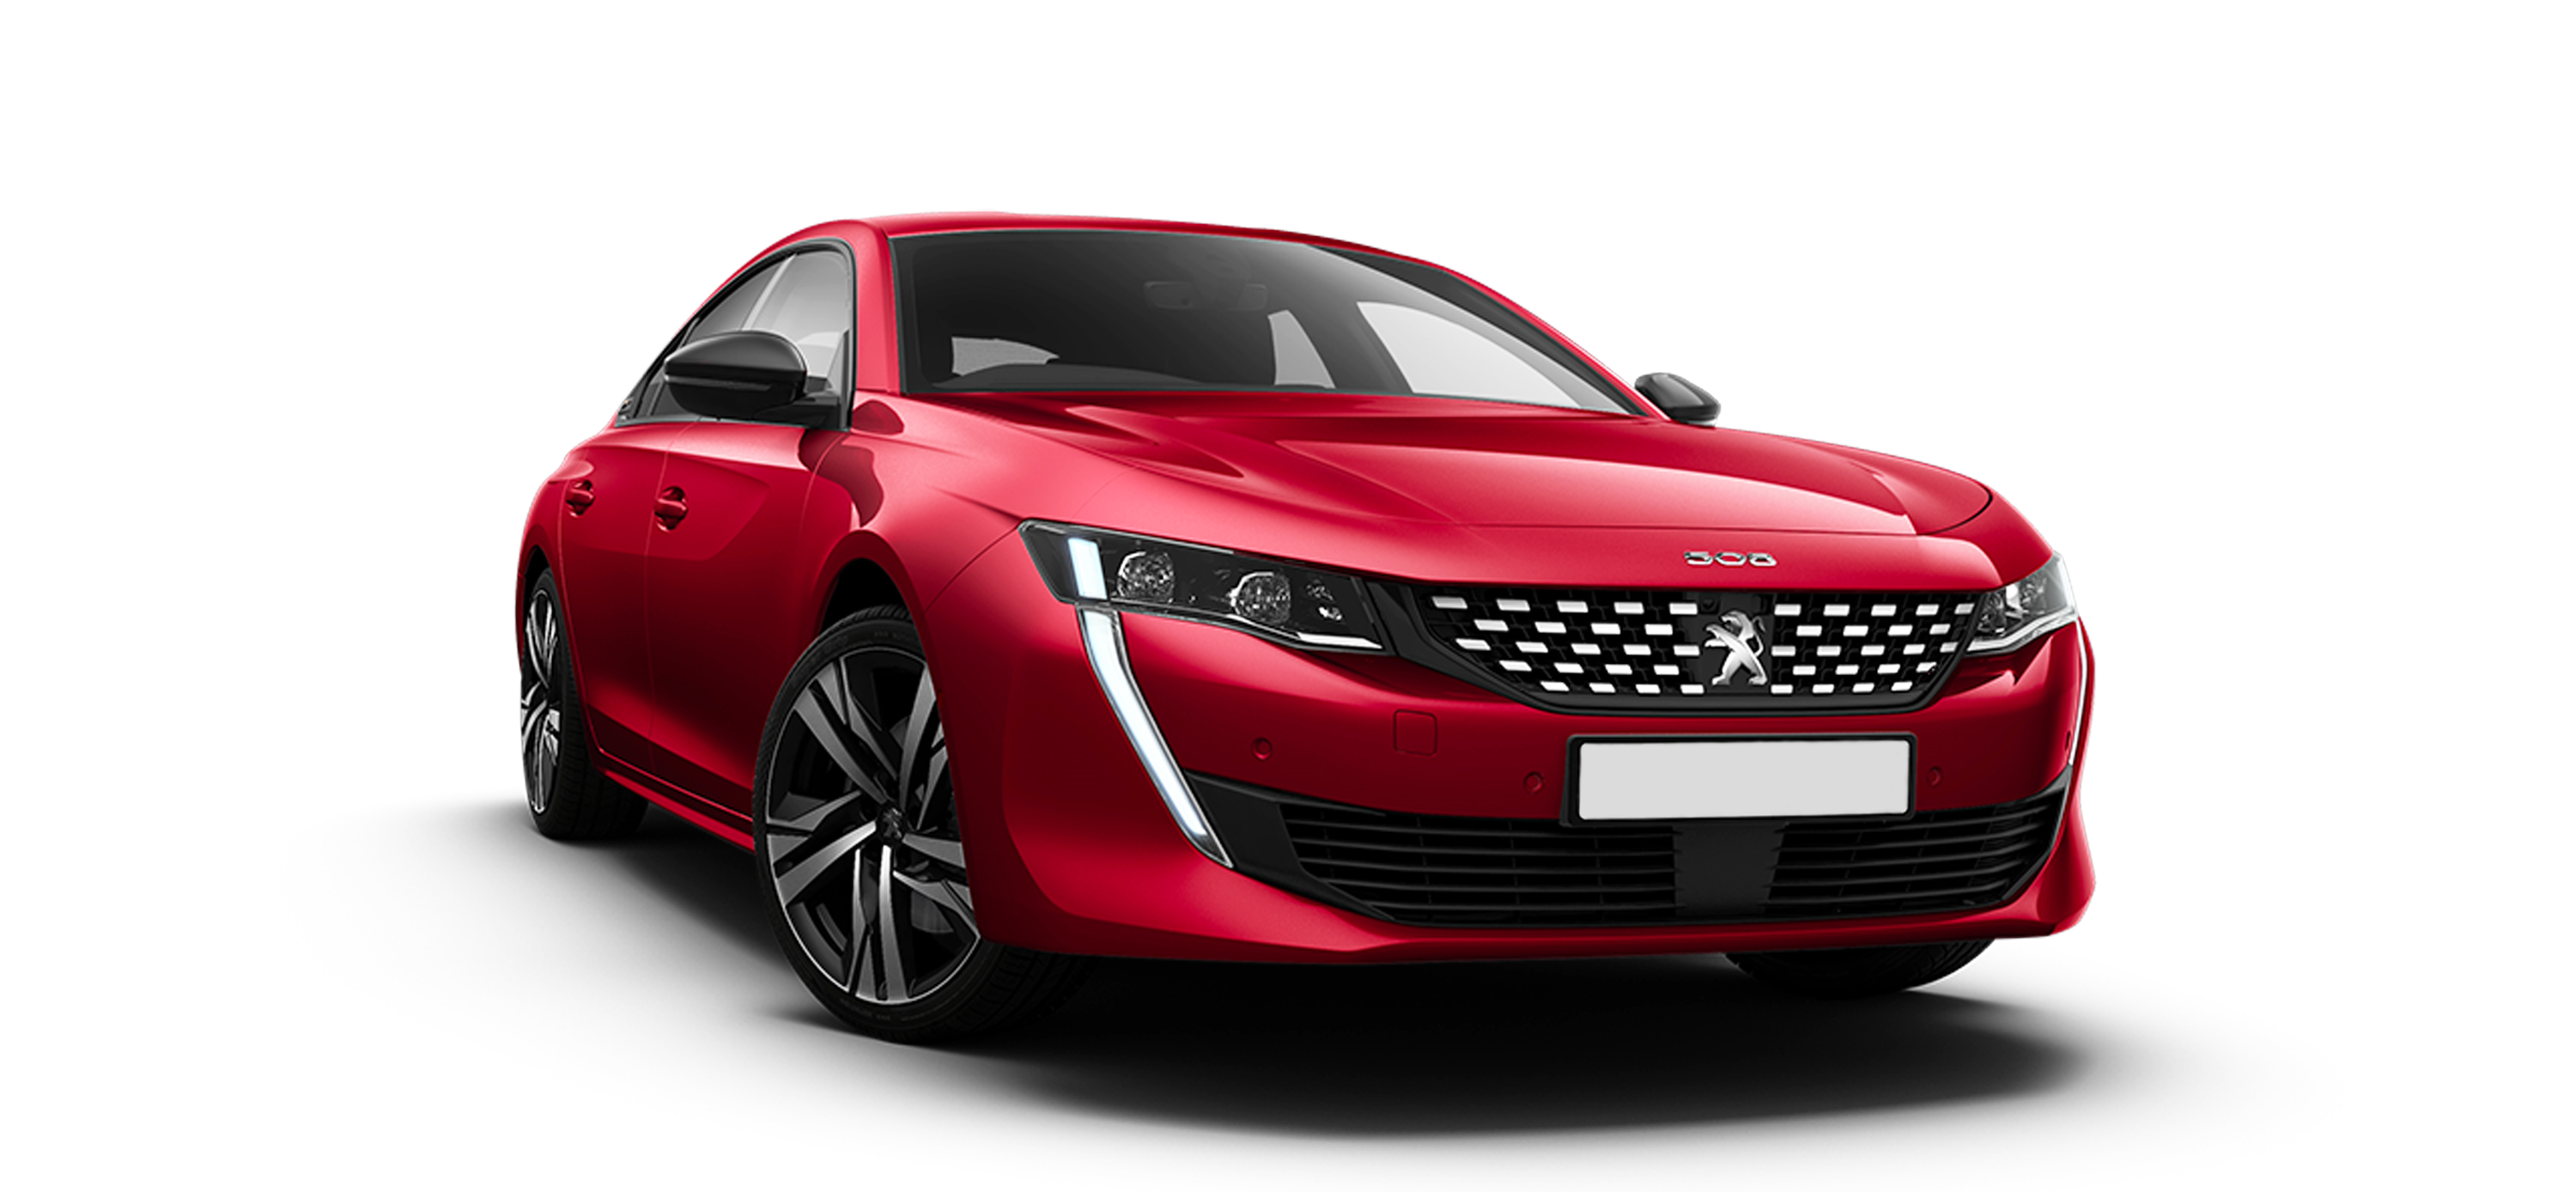 Peugeot 508 Image 1.png (1.50 MB)